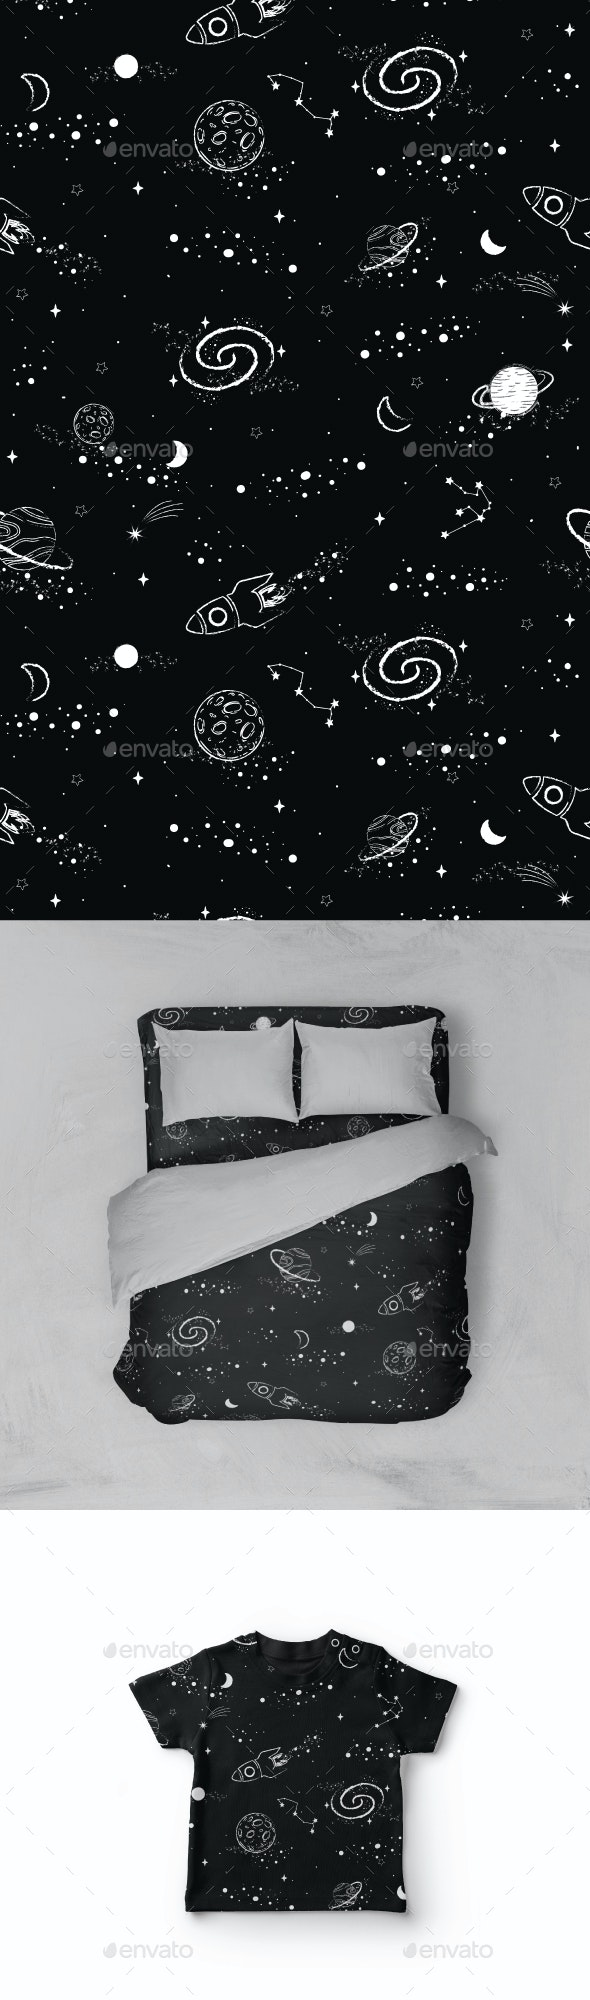 Hand drawn Seamless Outer Space Pattern - Patterns Decorative